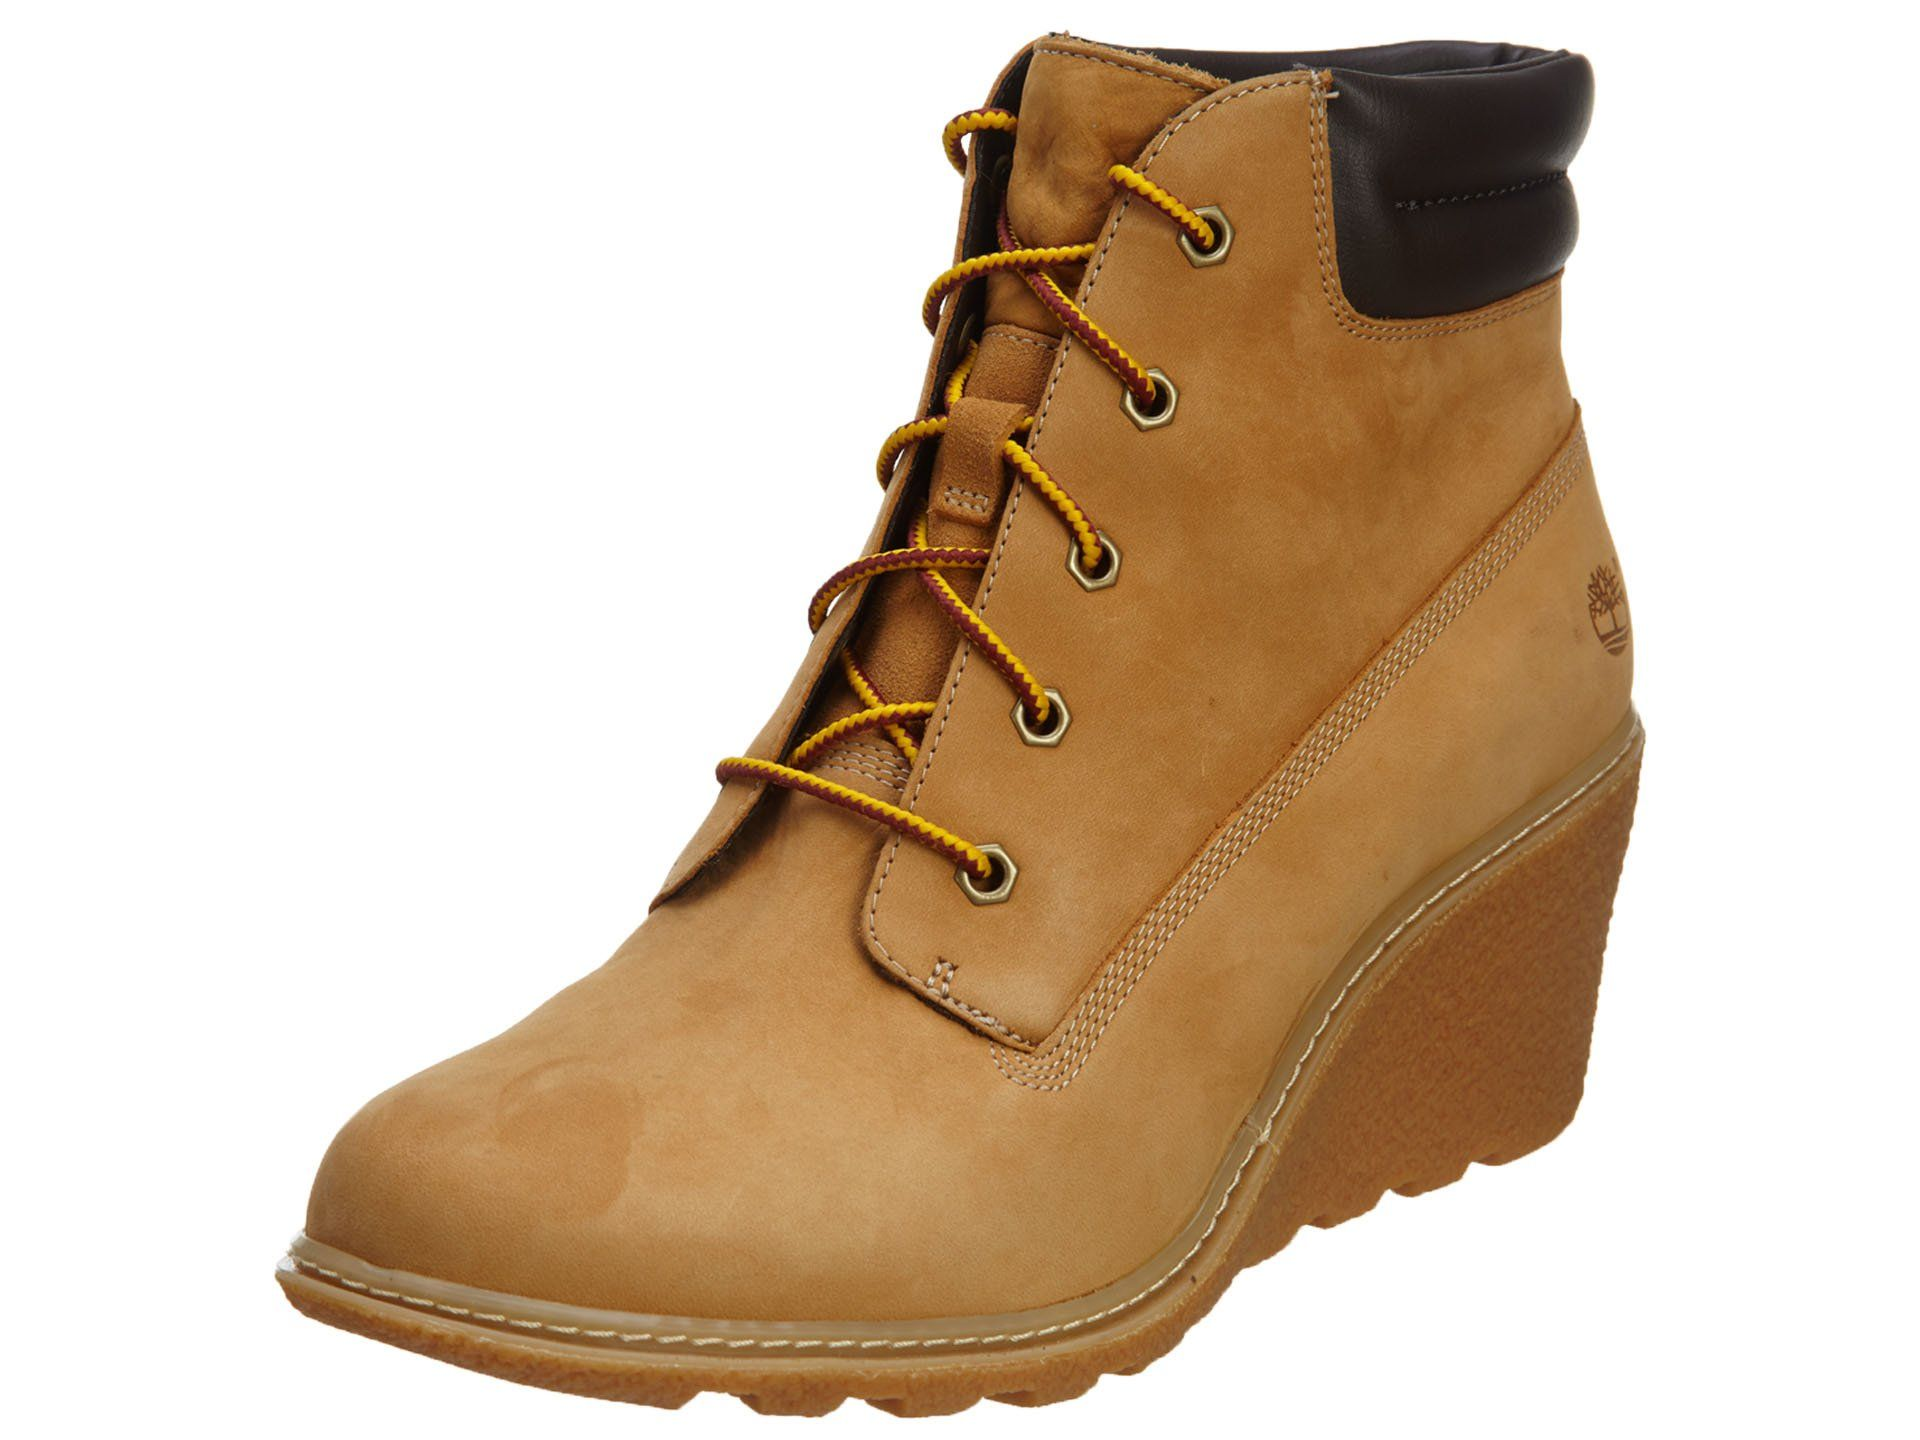 da9bd1a9501 Timberland Amston 6In Boot Womens Style  8251AWheat Size  6.5 M US    Find